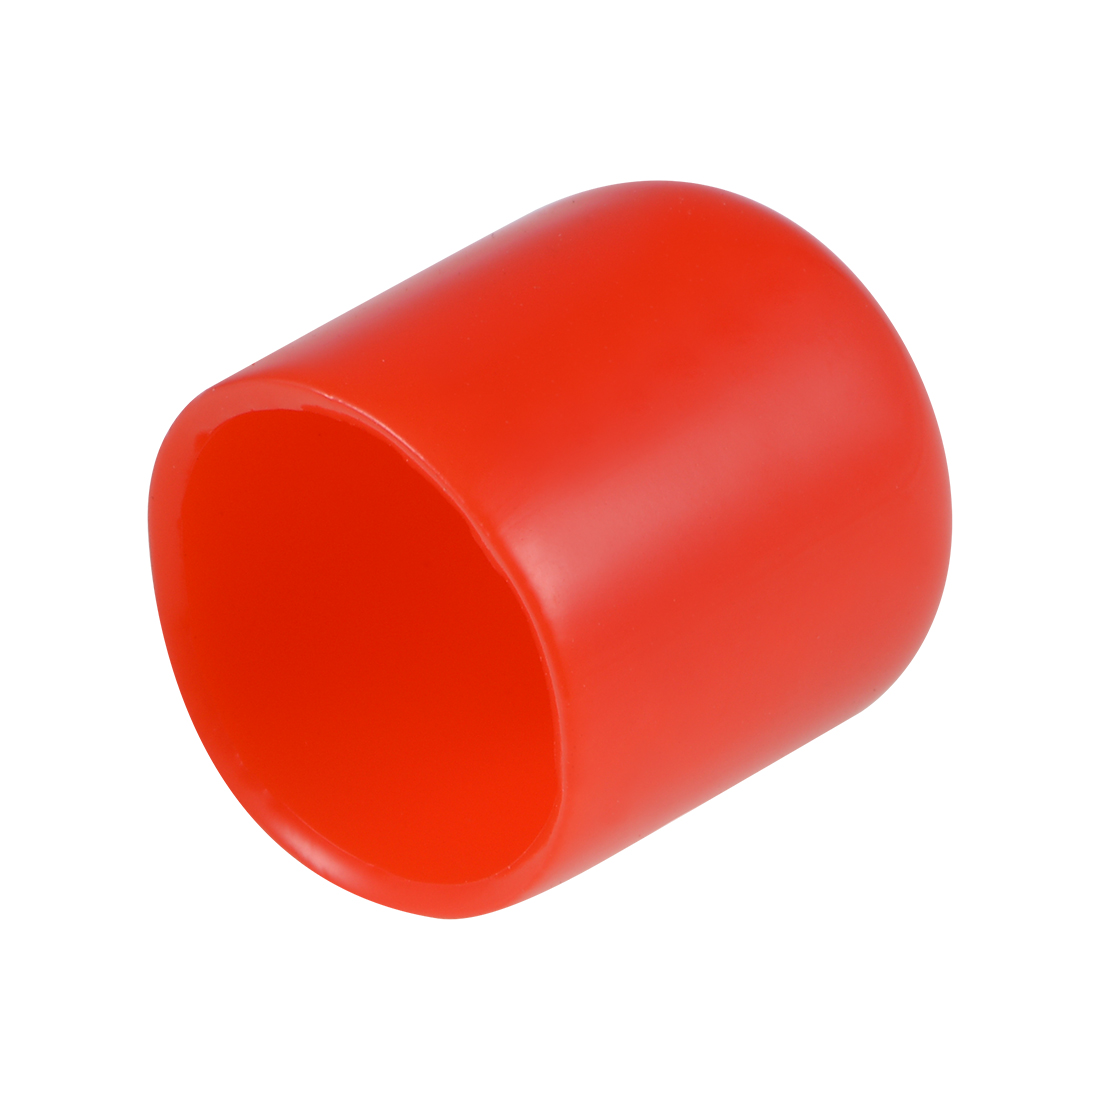 Screw Thread Protector, 16mm ID Round End Cap Cover Red Tube Caps 20pcs